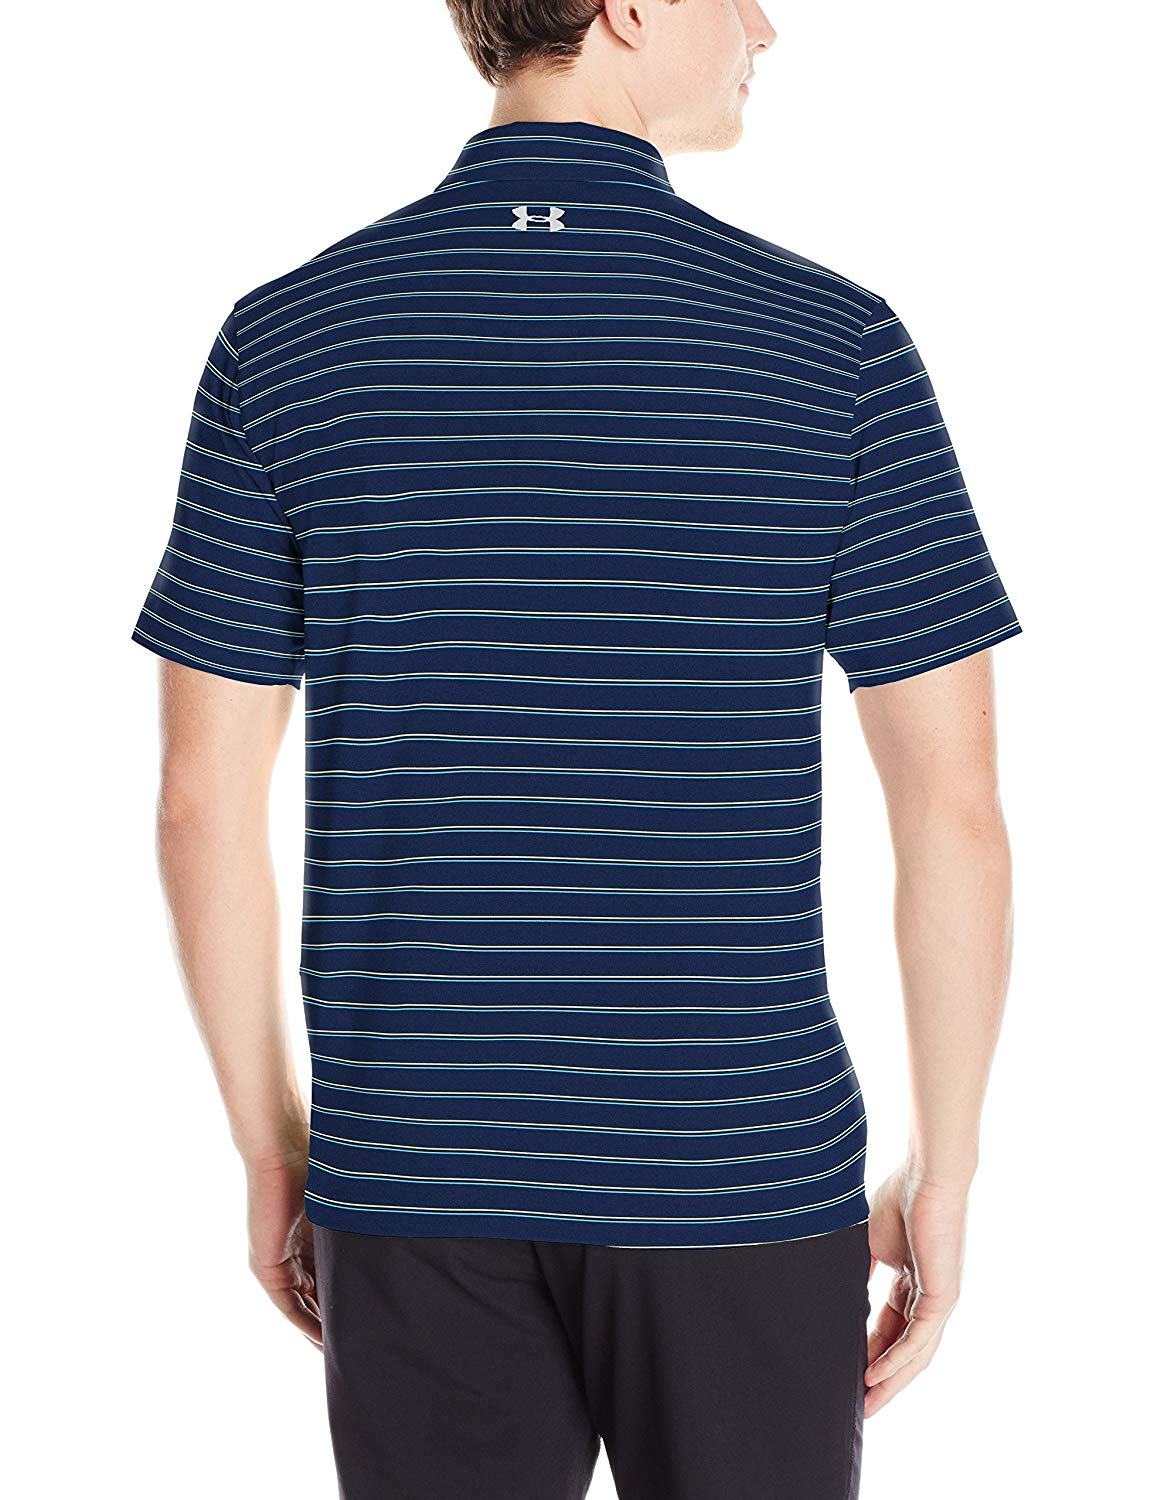 Under Armour Mens CoolSwitch Putting Stripe Polo Shirt